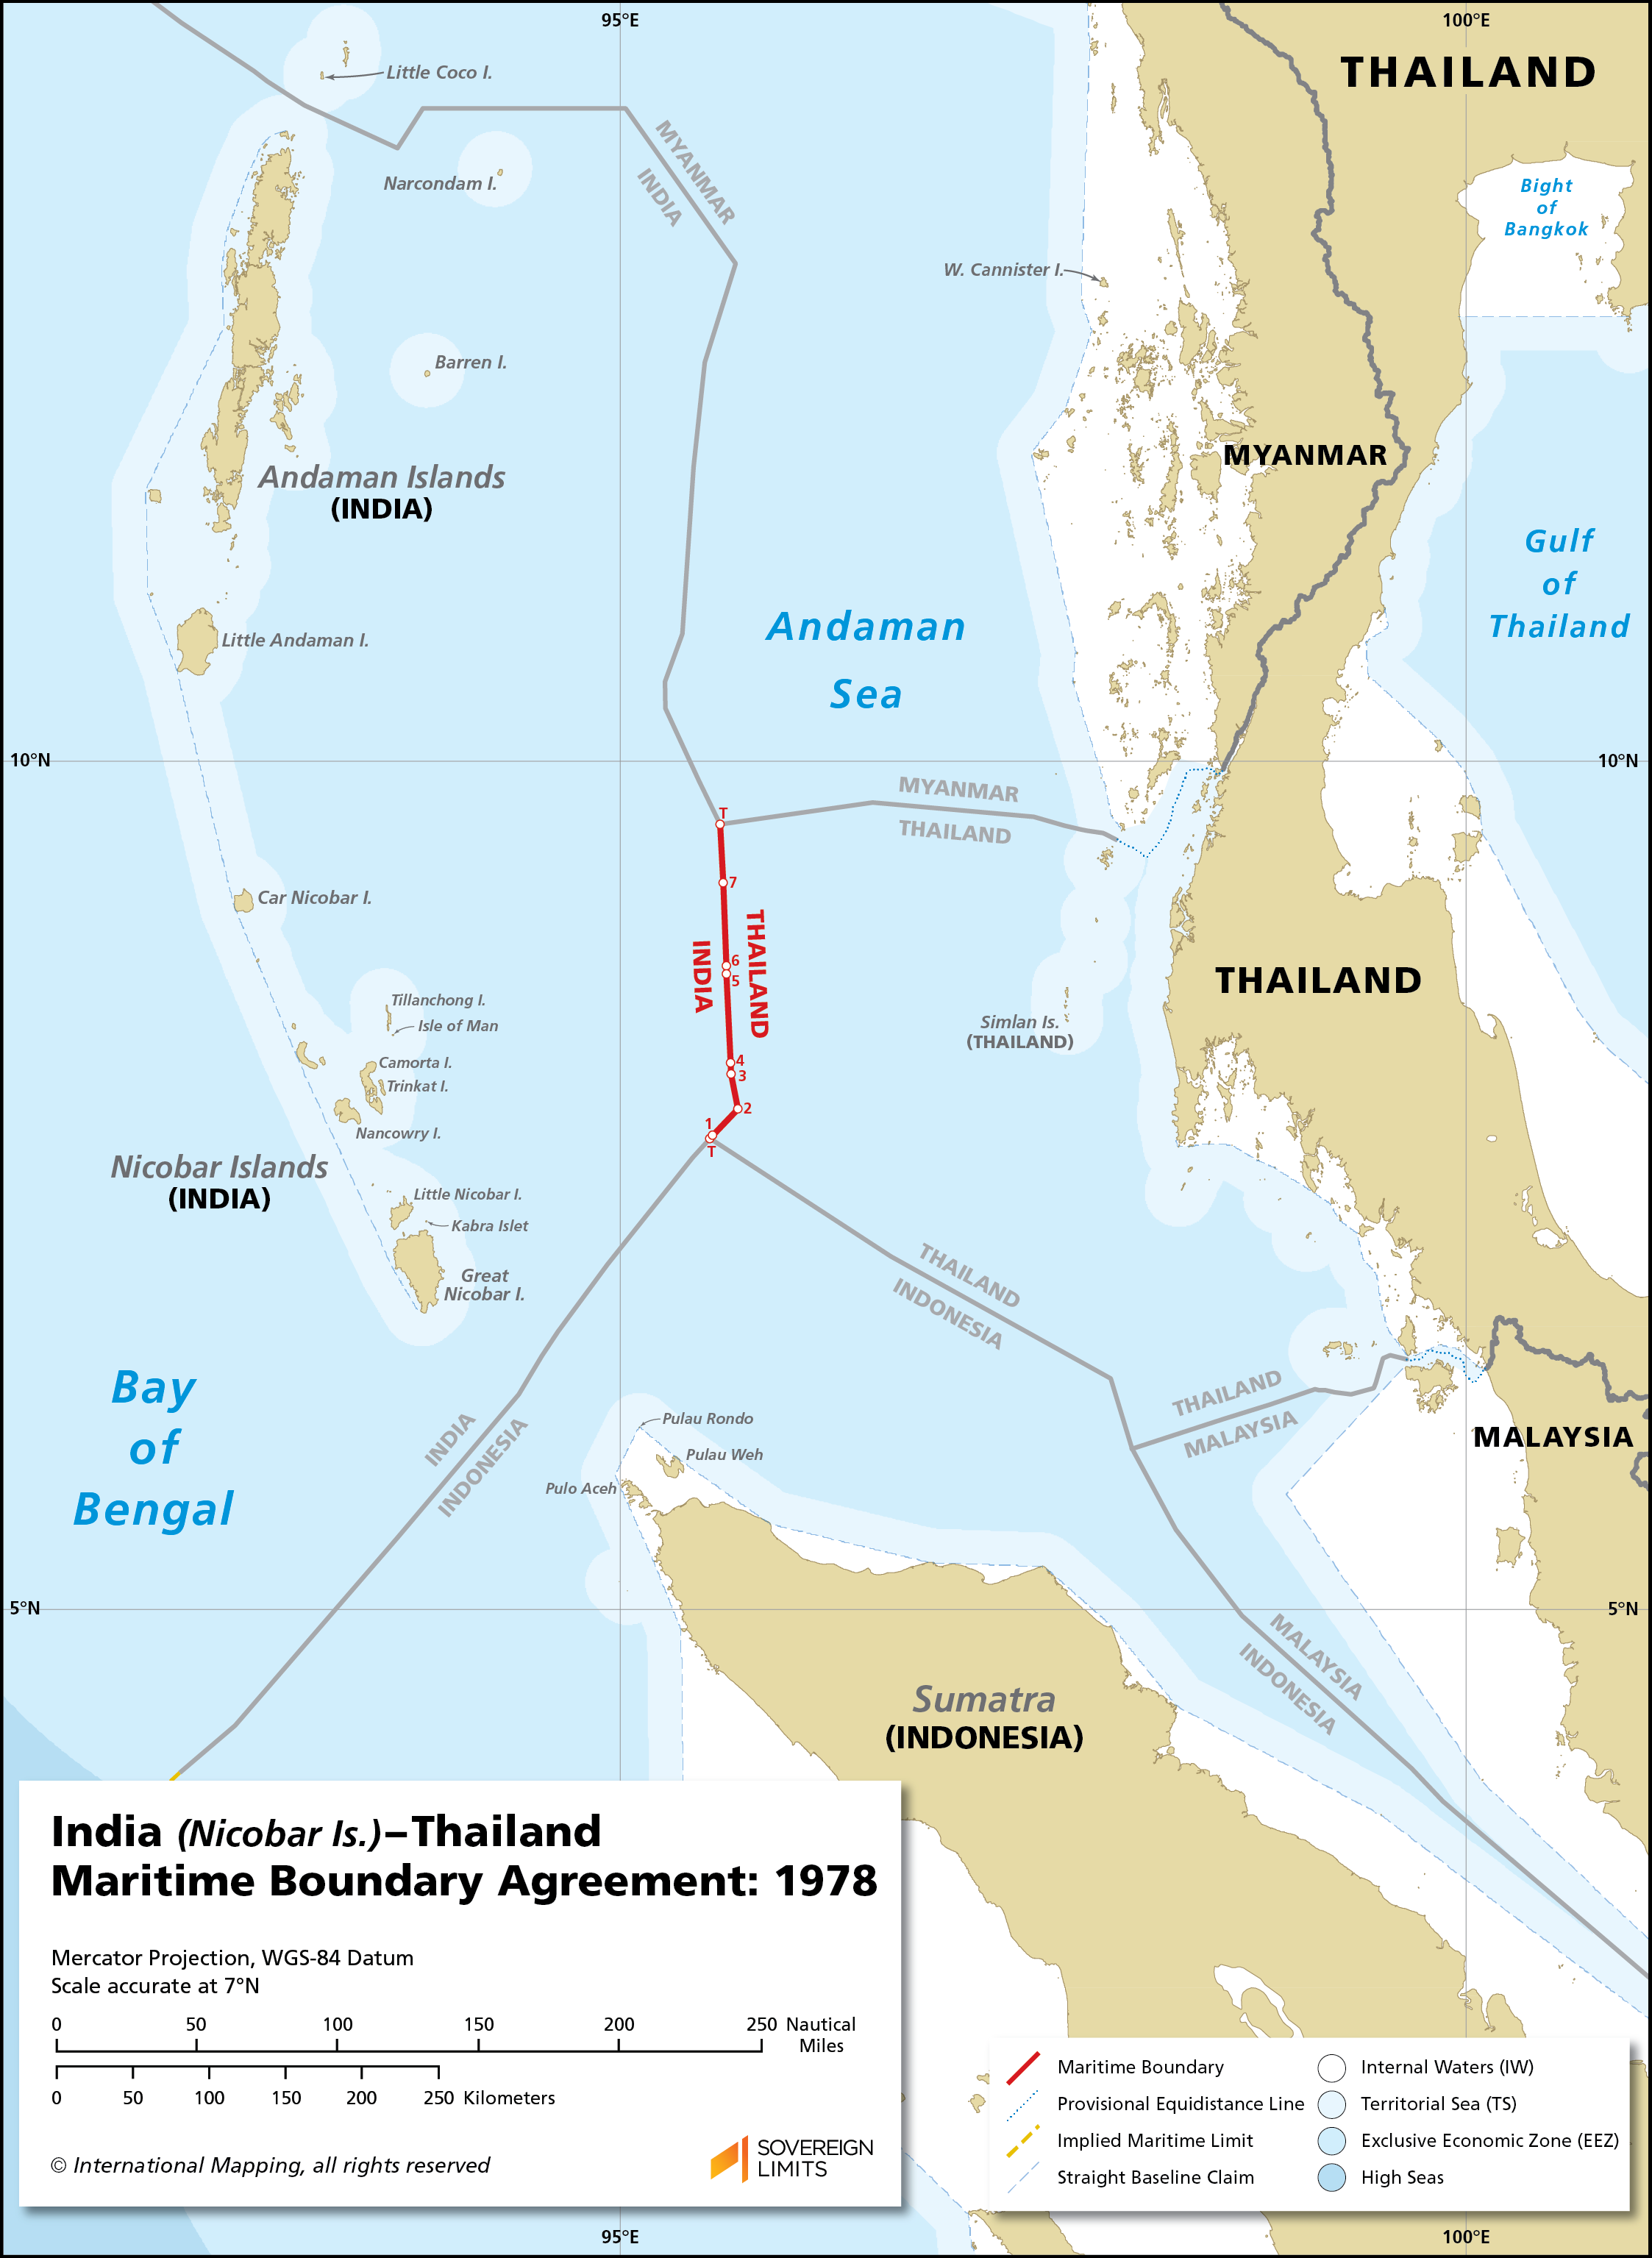 Map showing the maritime boundary between India and Thailand